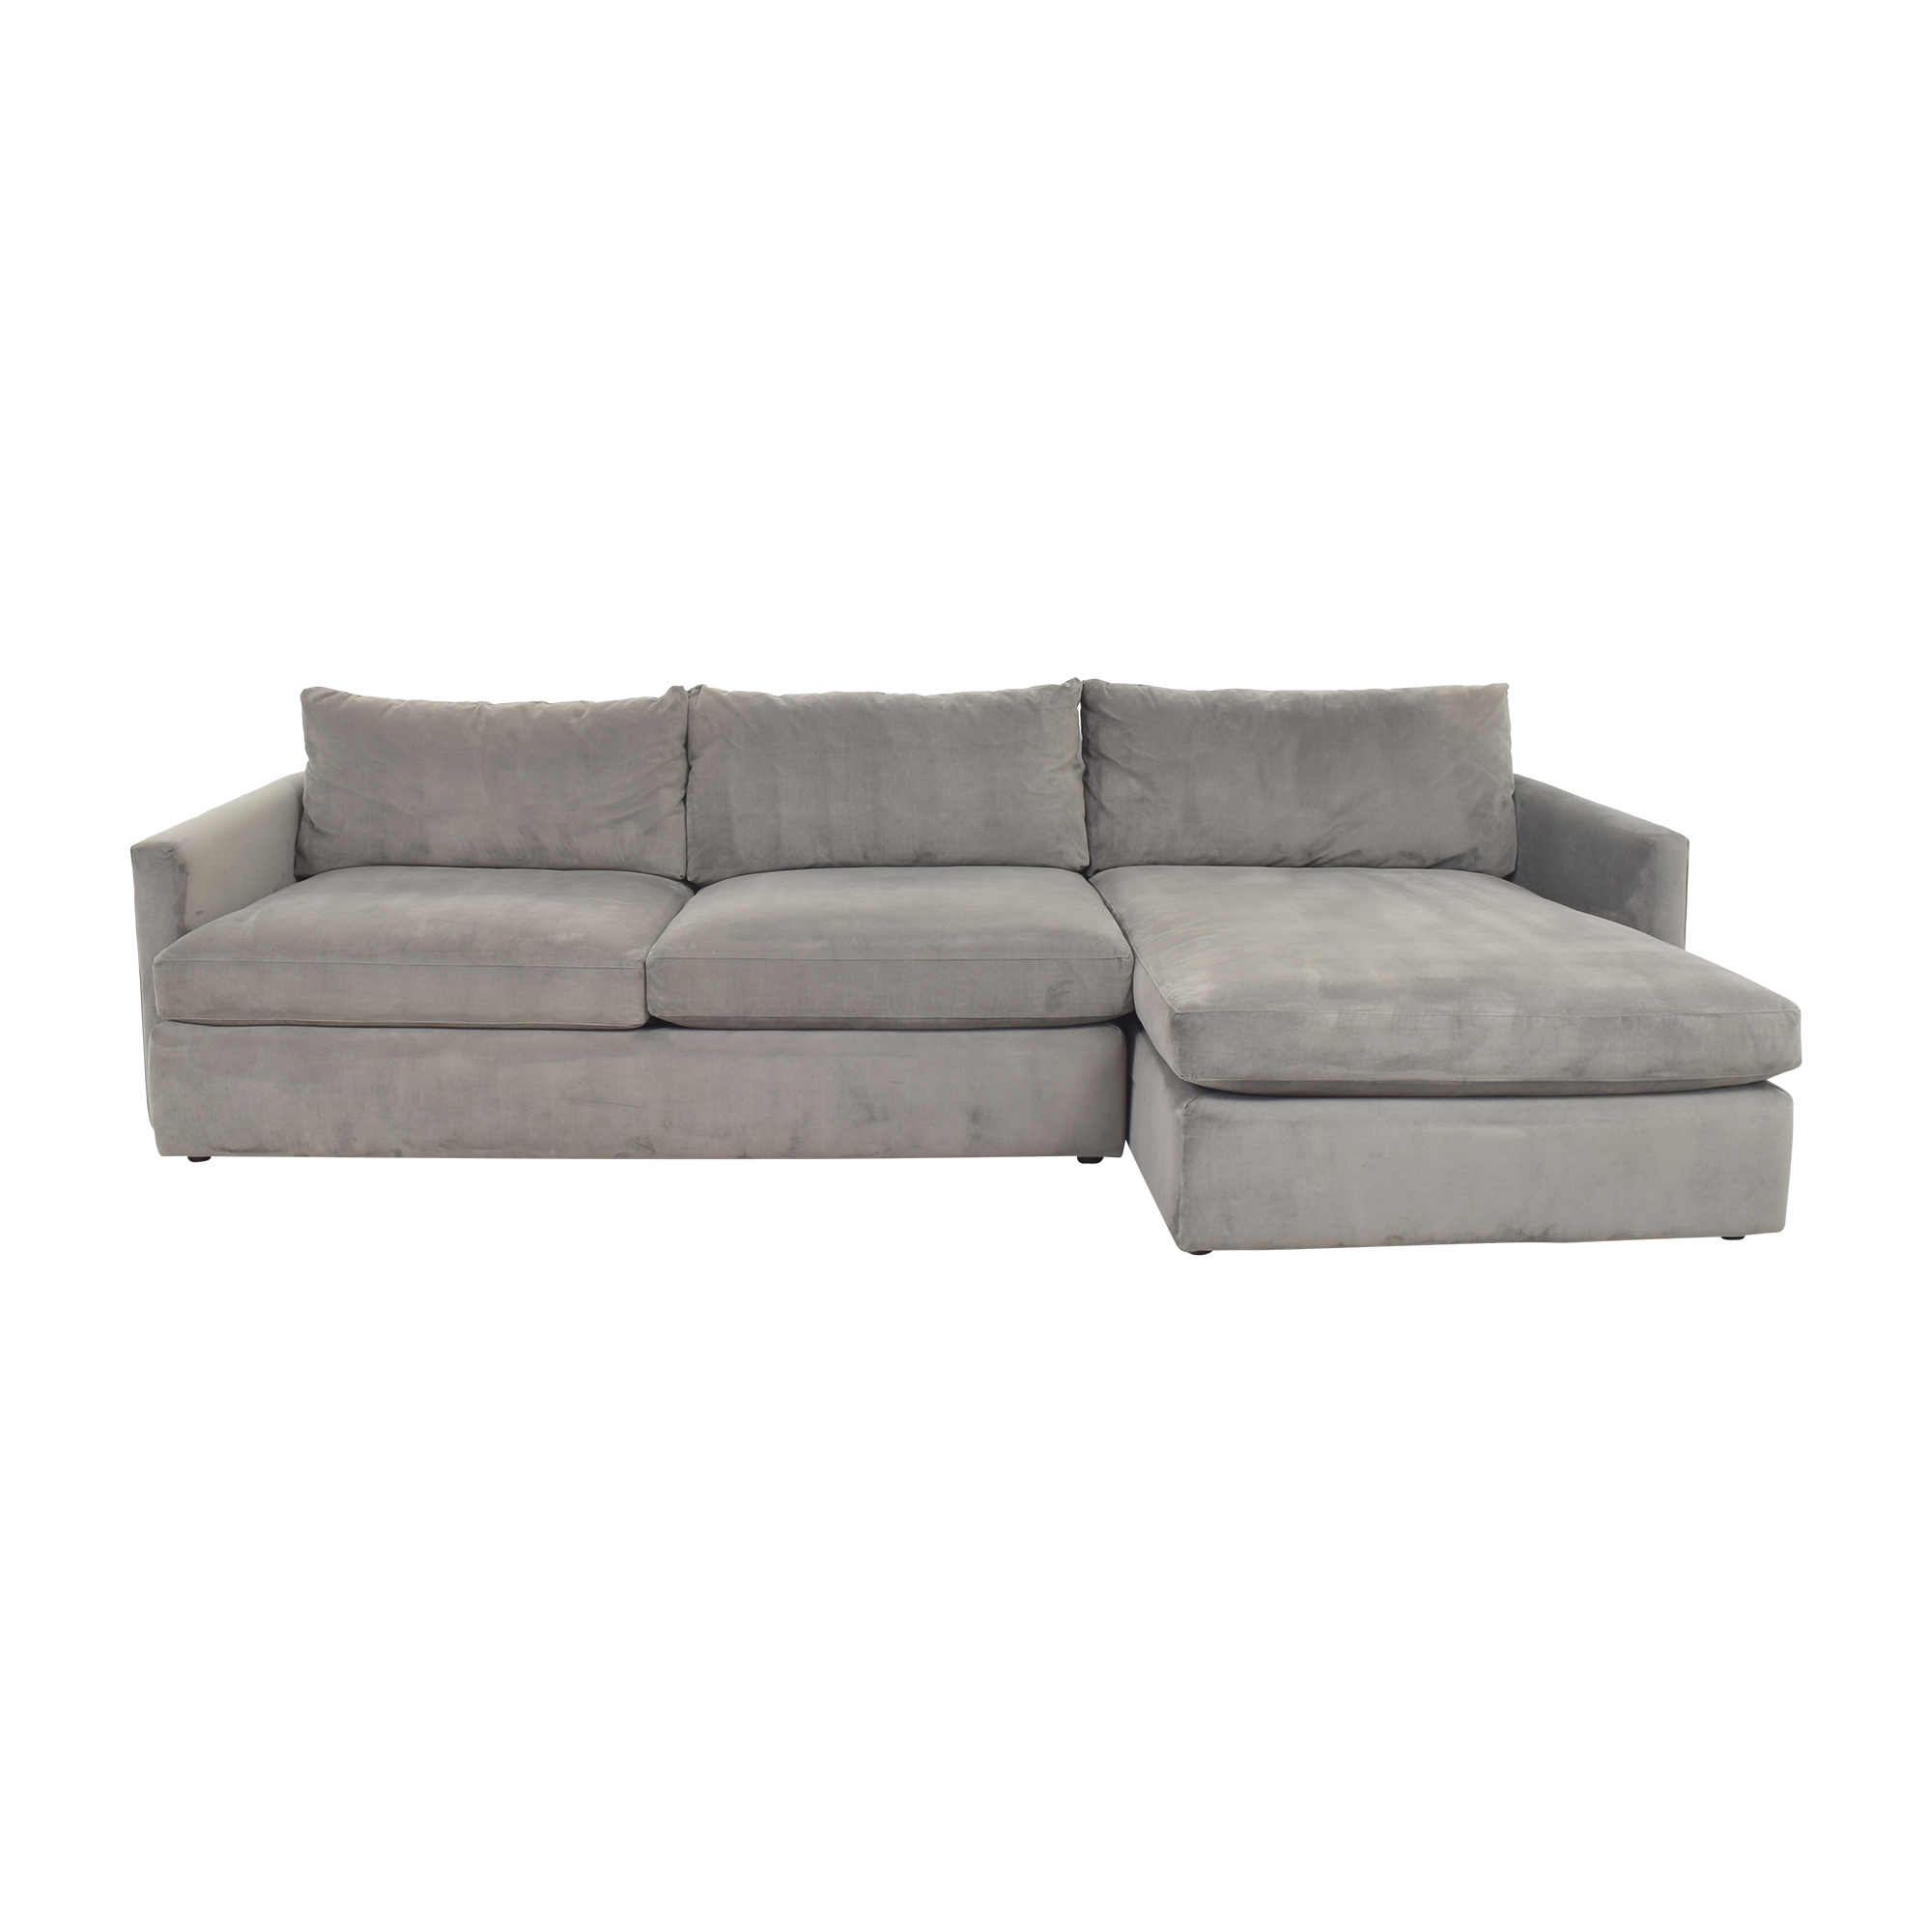 Crate & Barrel Lounge II Chaise Sectional Sofa sale